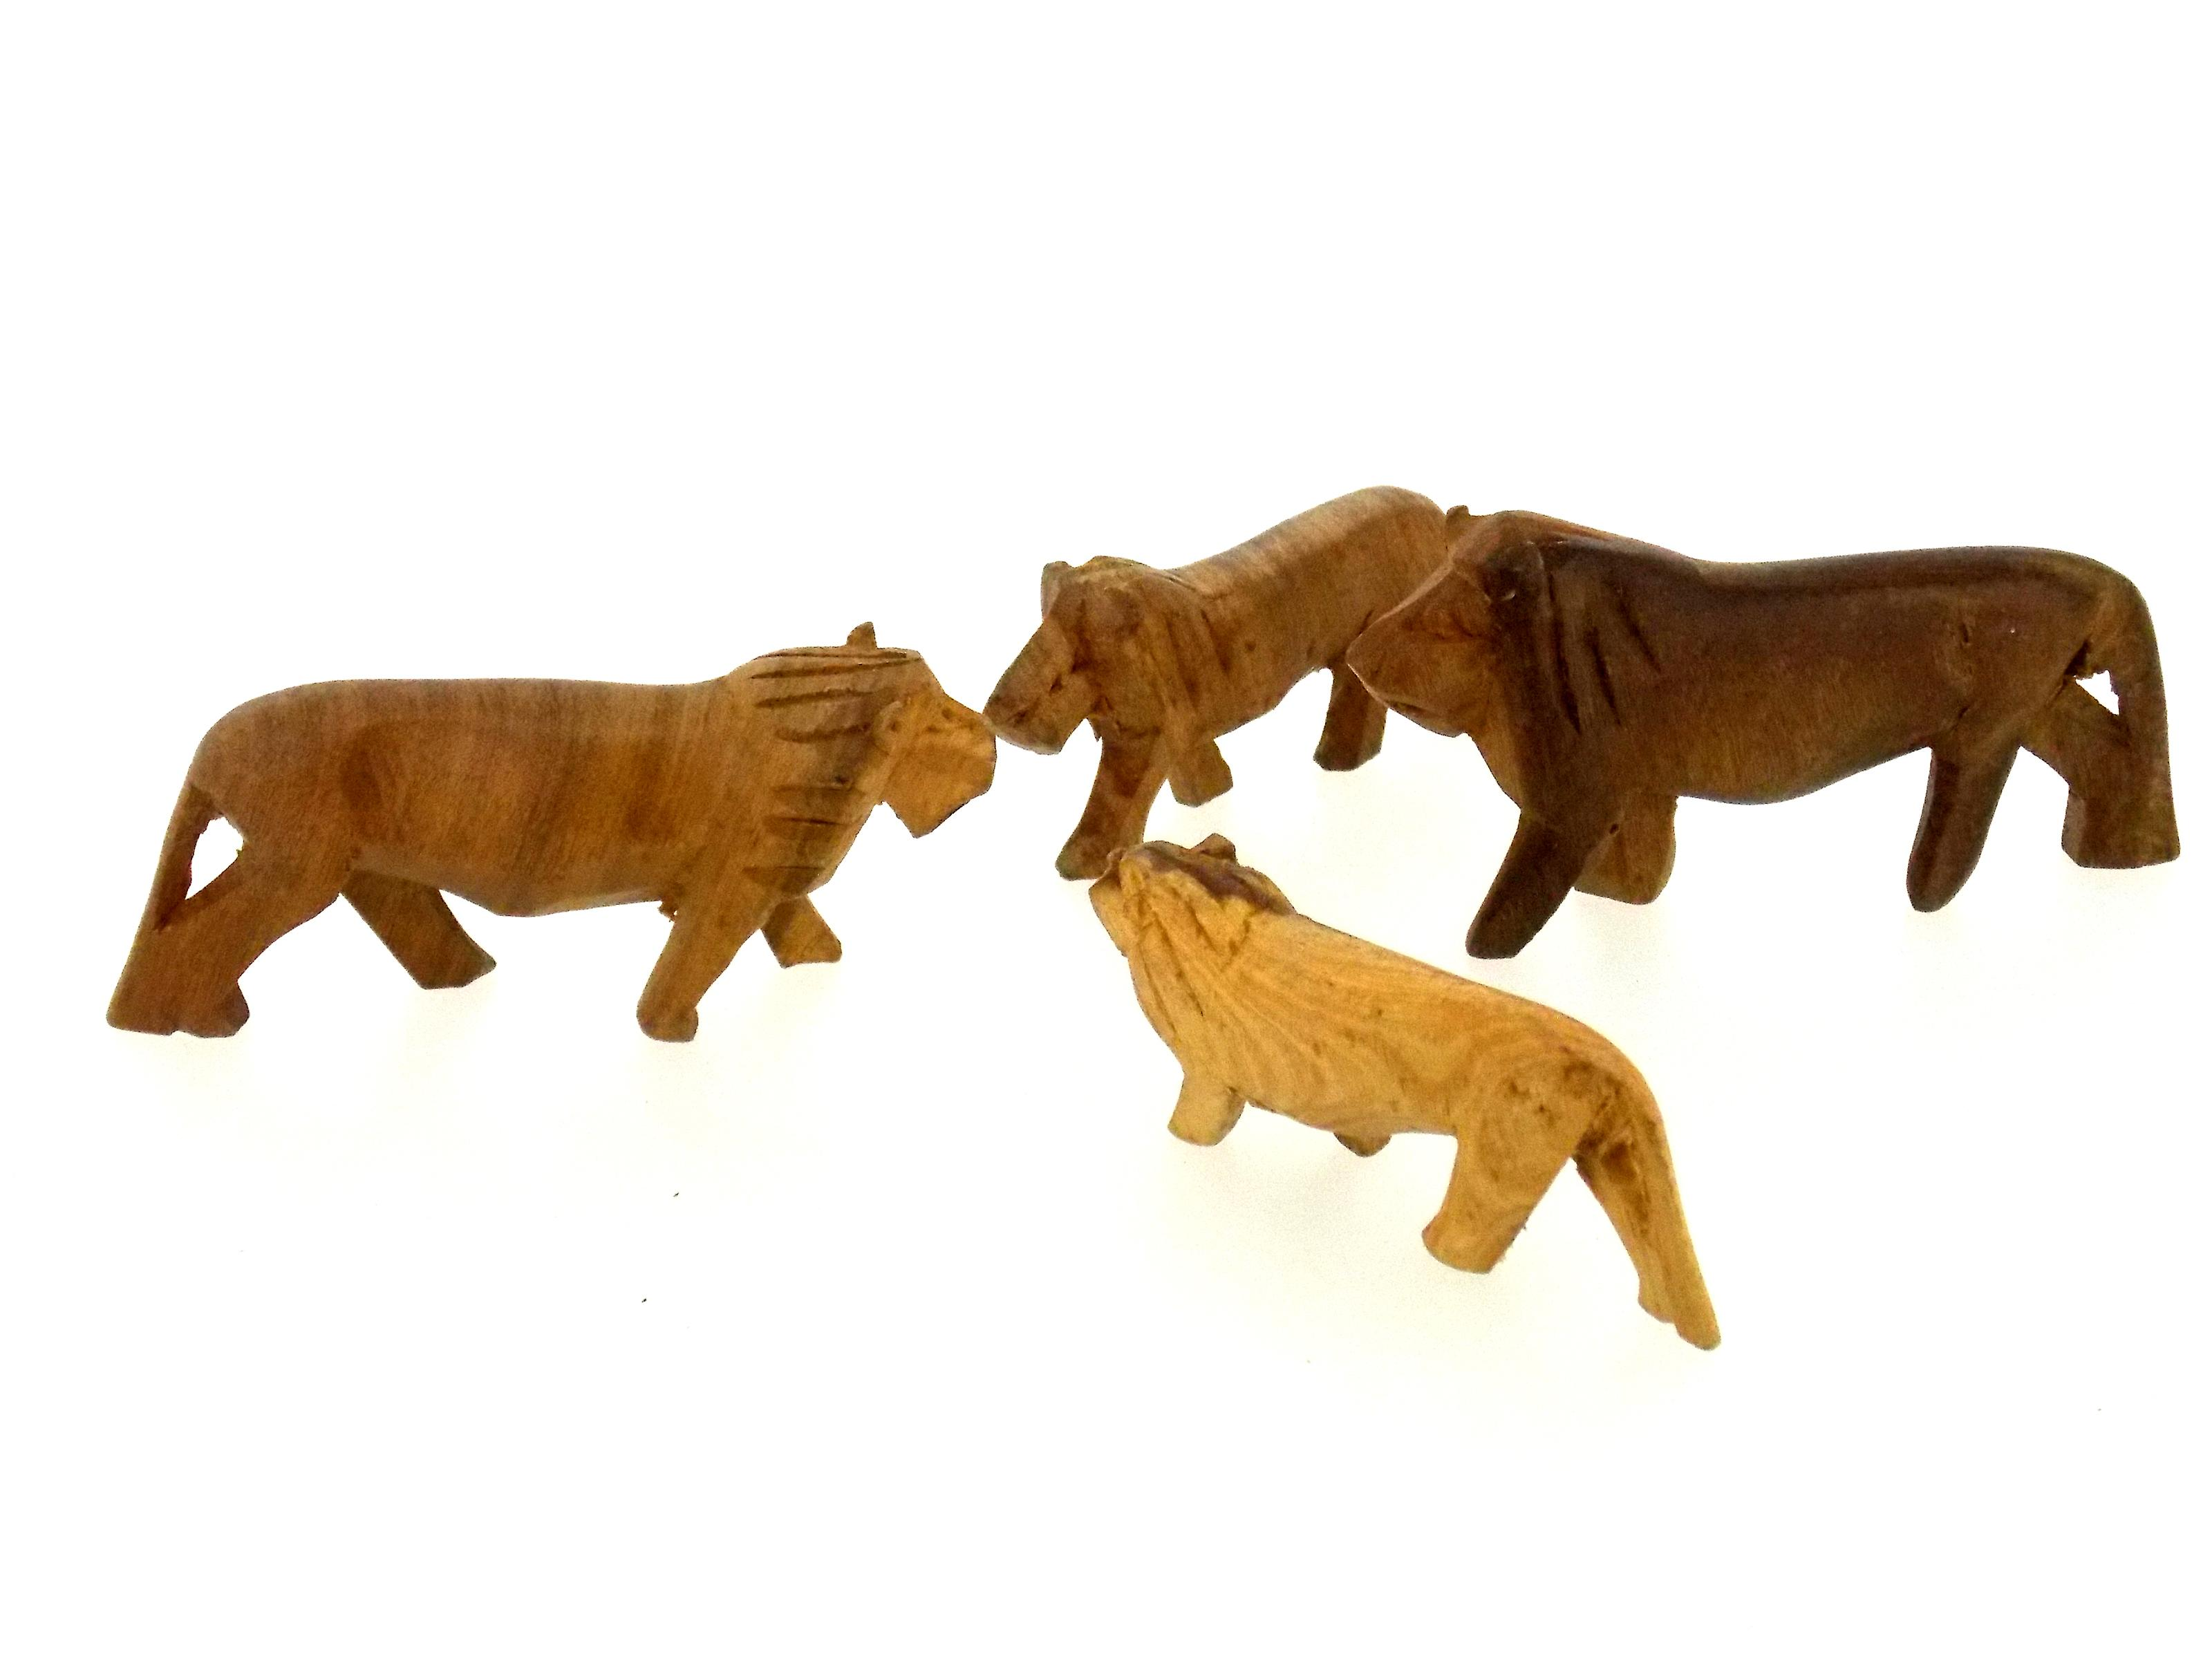 Vintage Wooden Lion Figurine Family - 4 Piece Set